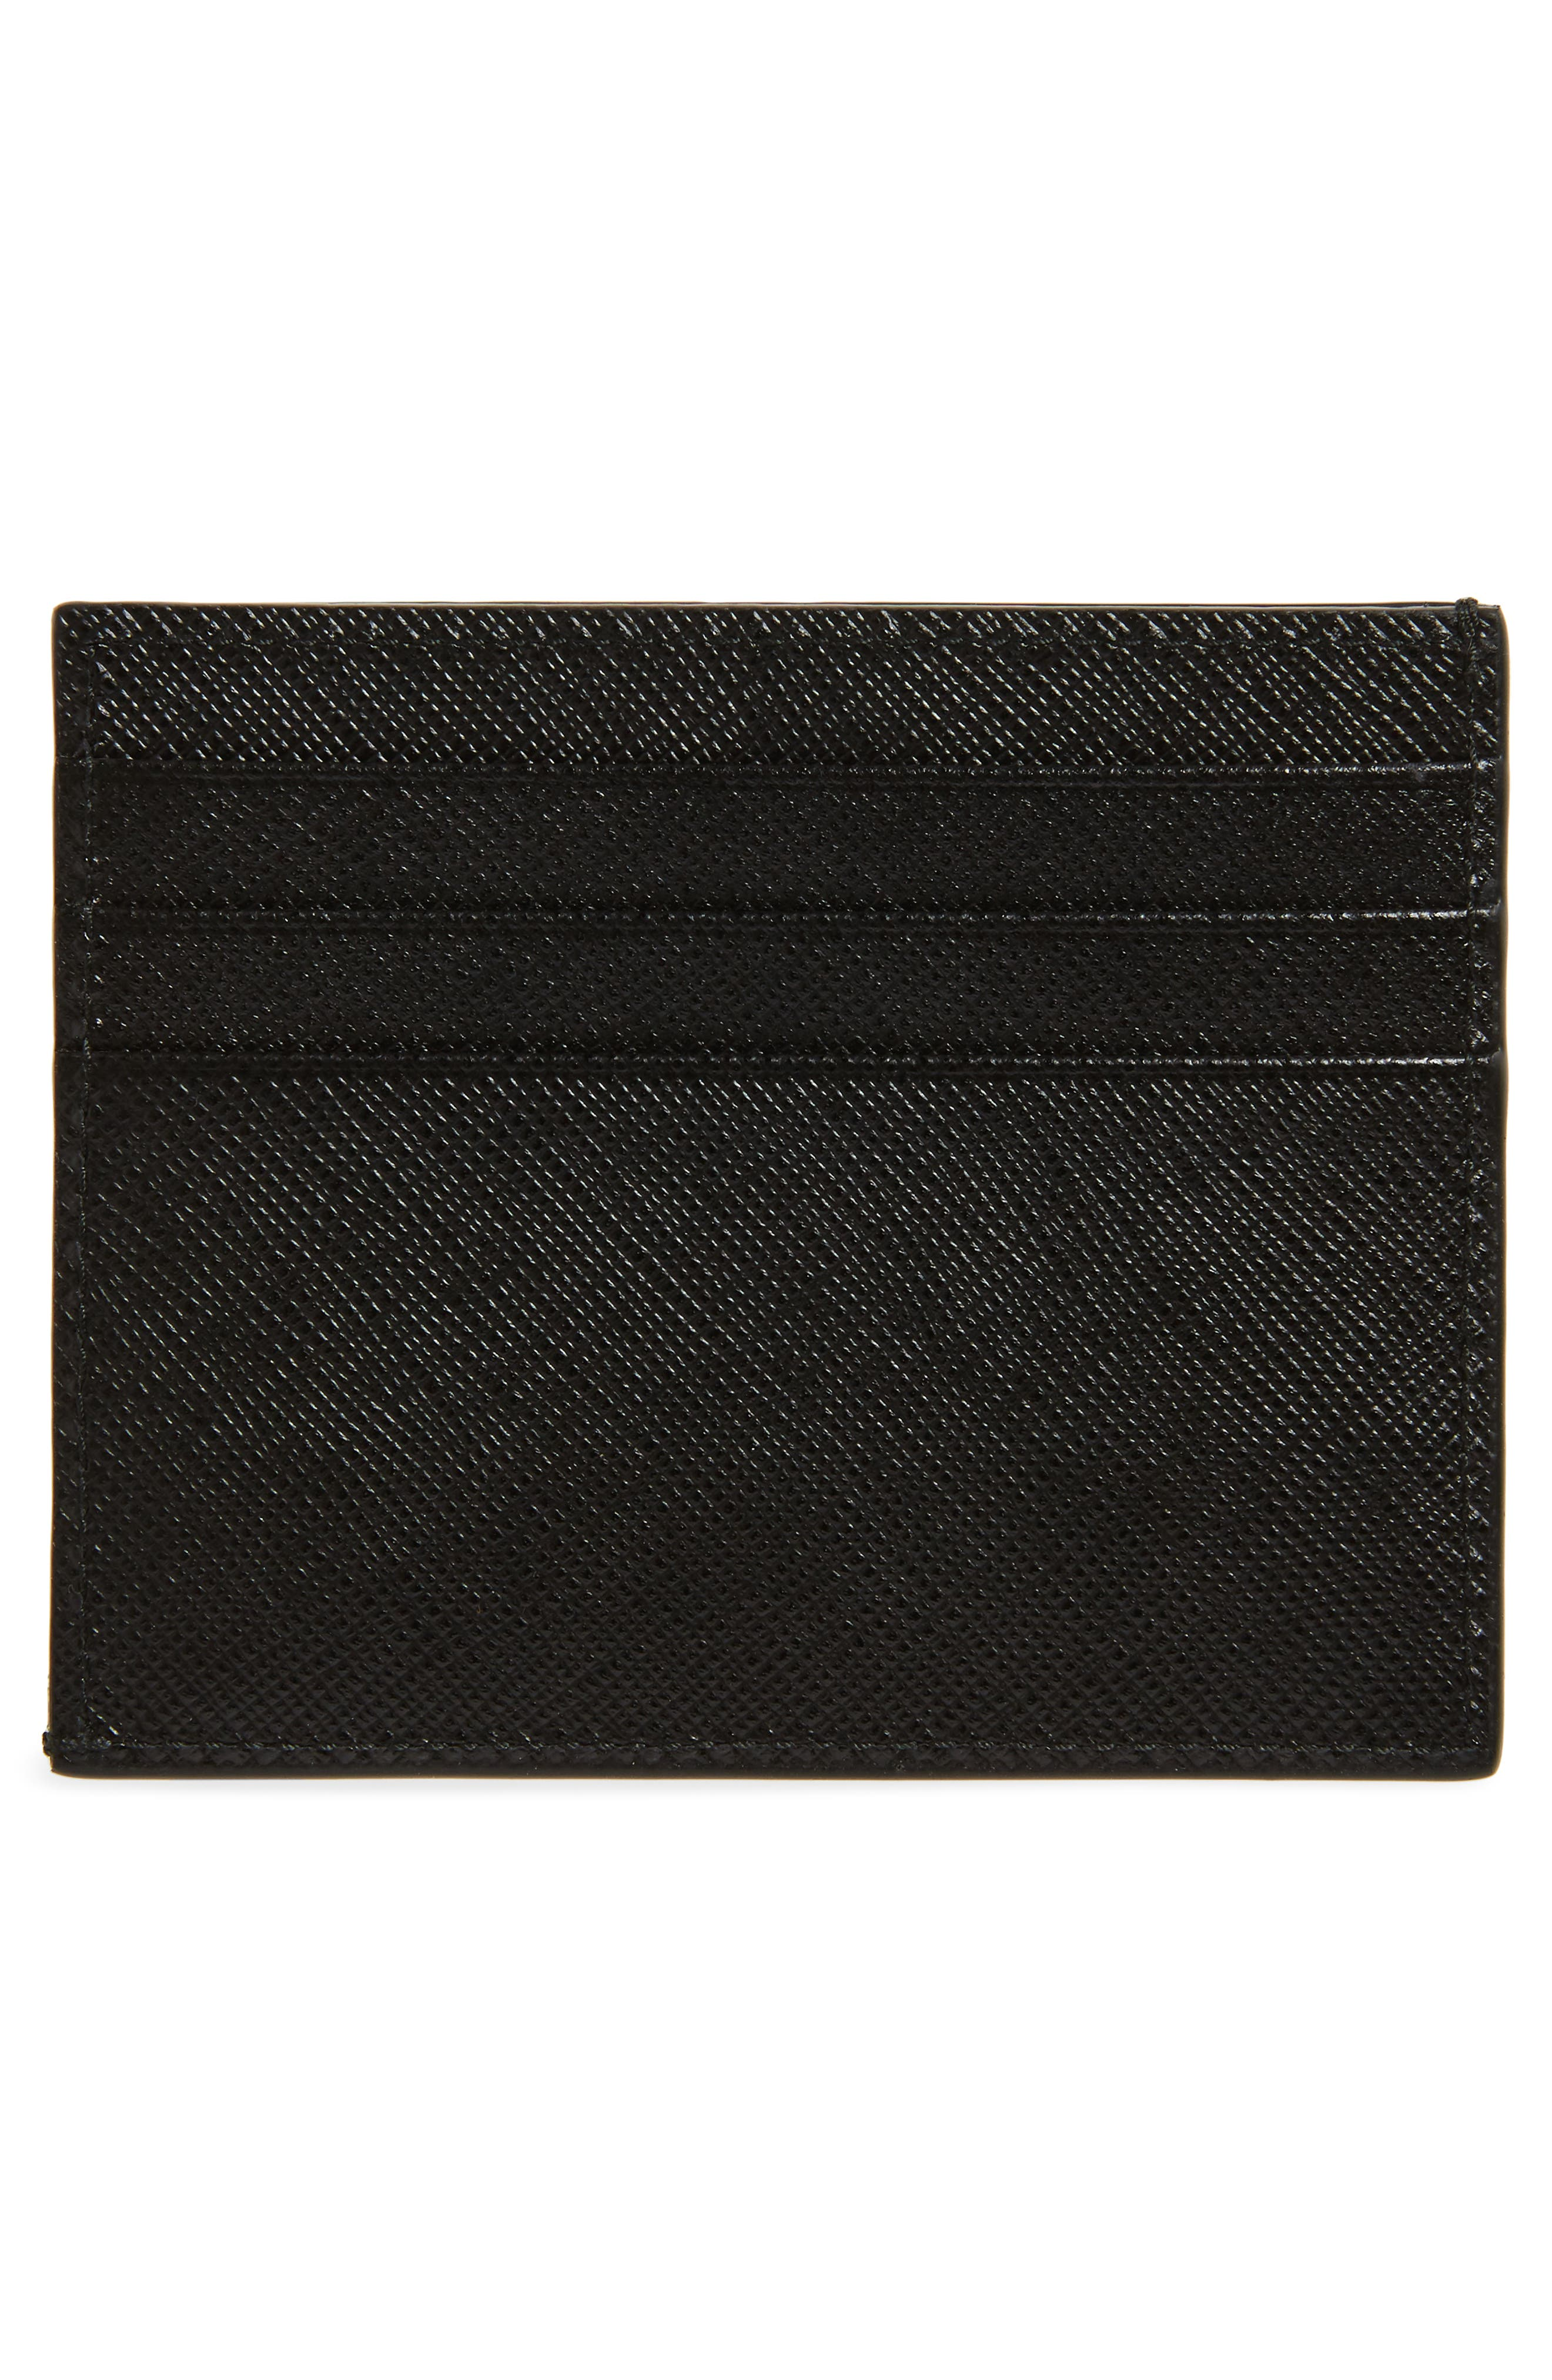 Saffiano Leather Card Case,                             Alternate thumbnail 3, color,